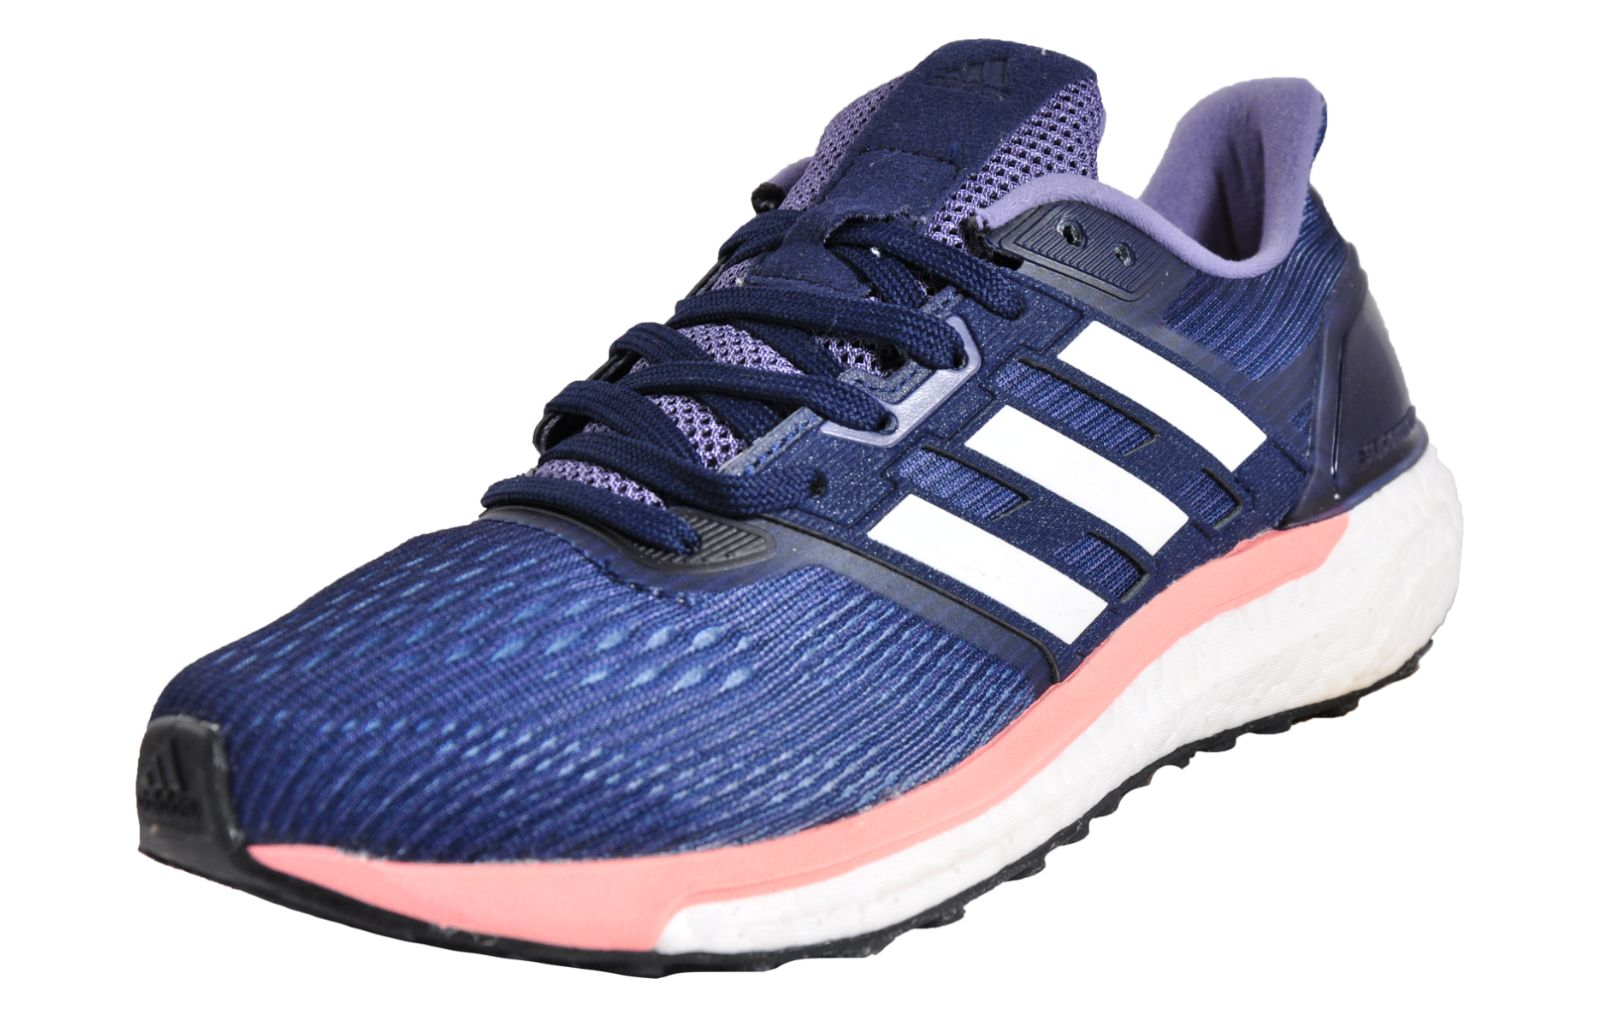 Adidas Supernova Boost Womens